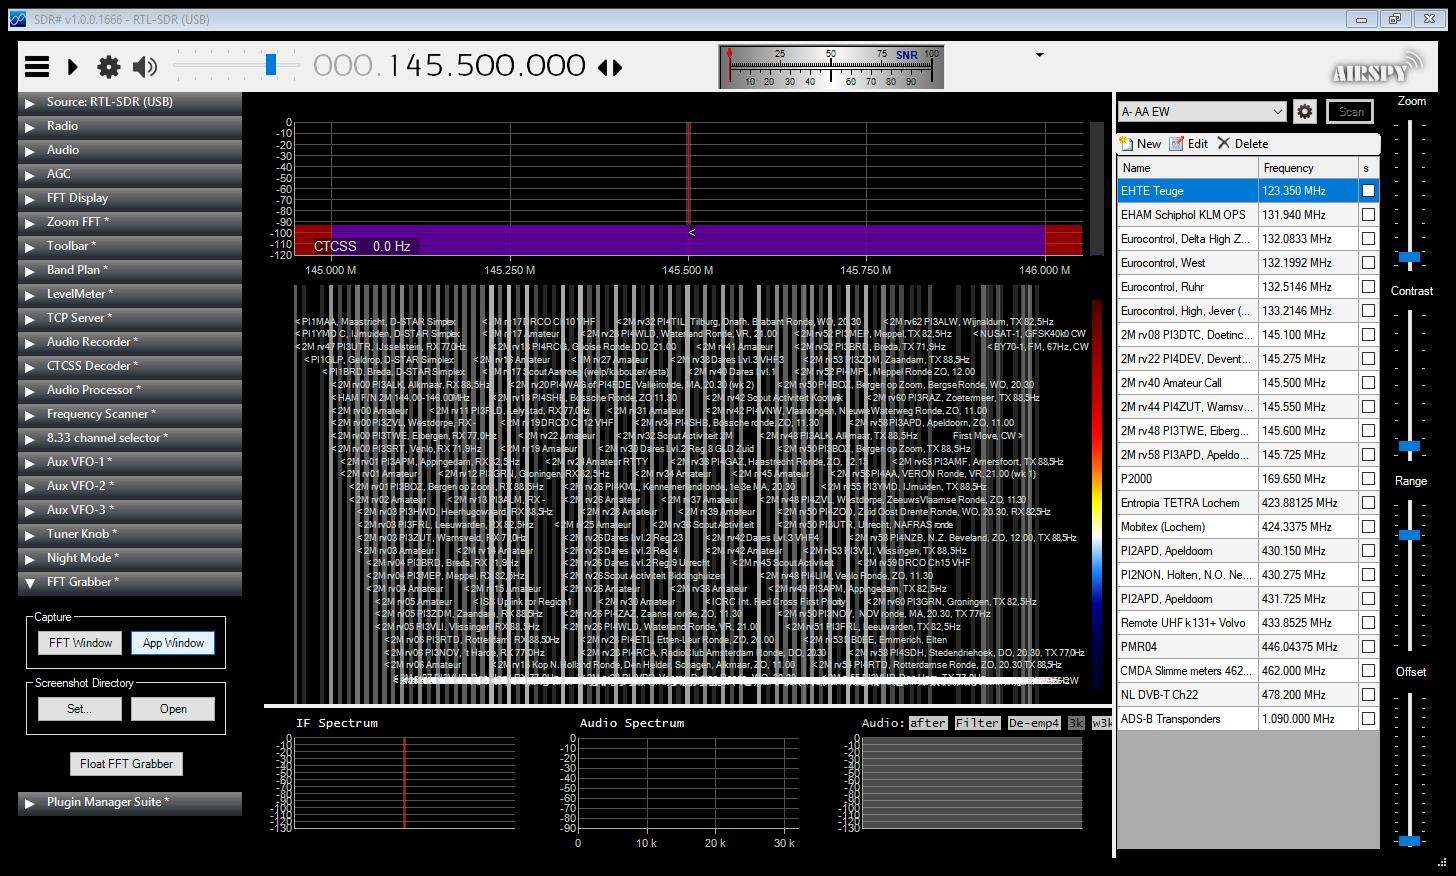 SDR-Sharp-Screen-Grab-17004205102018.jpg